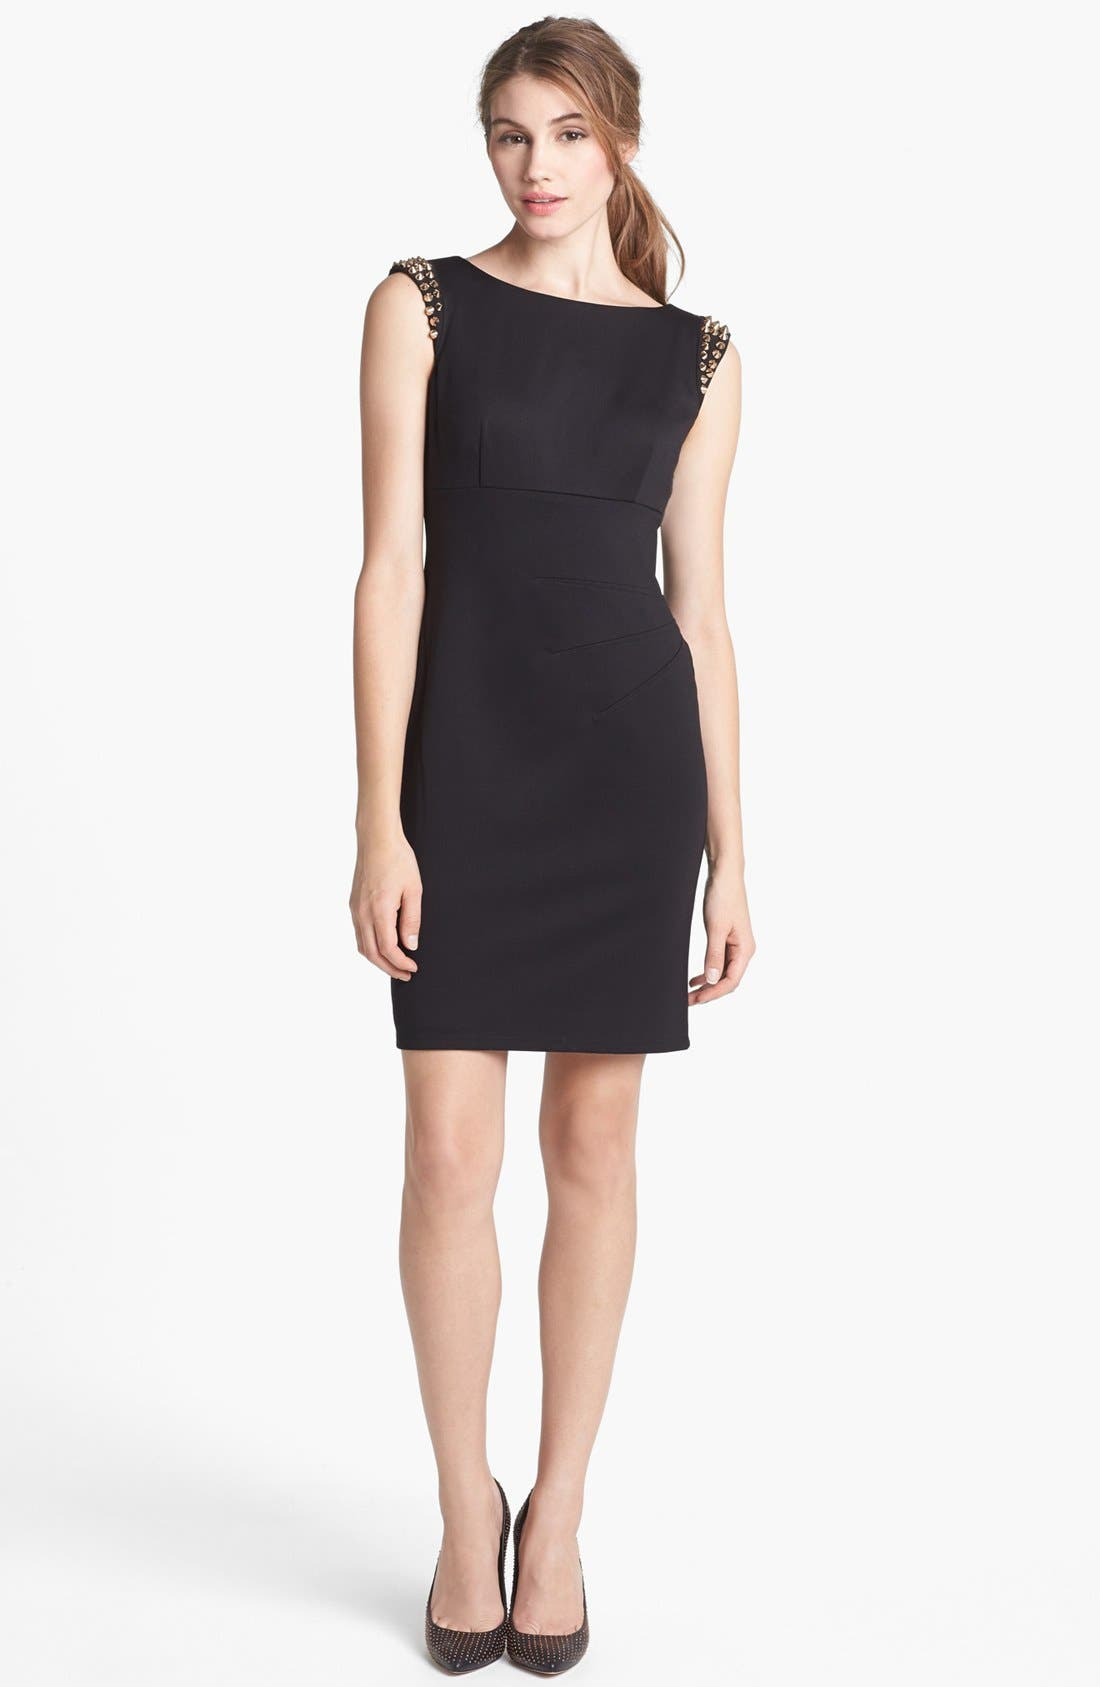 Main Image - Vince Camuto Spiked Shoulder Ponte Knit Sheath Dress